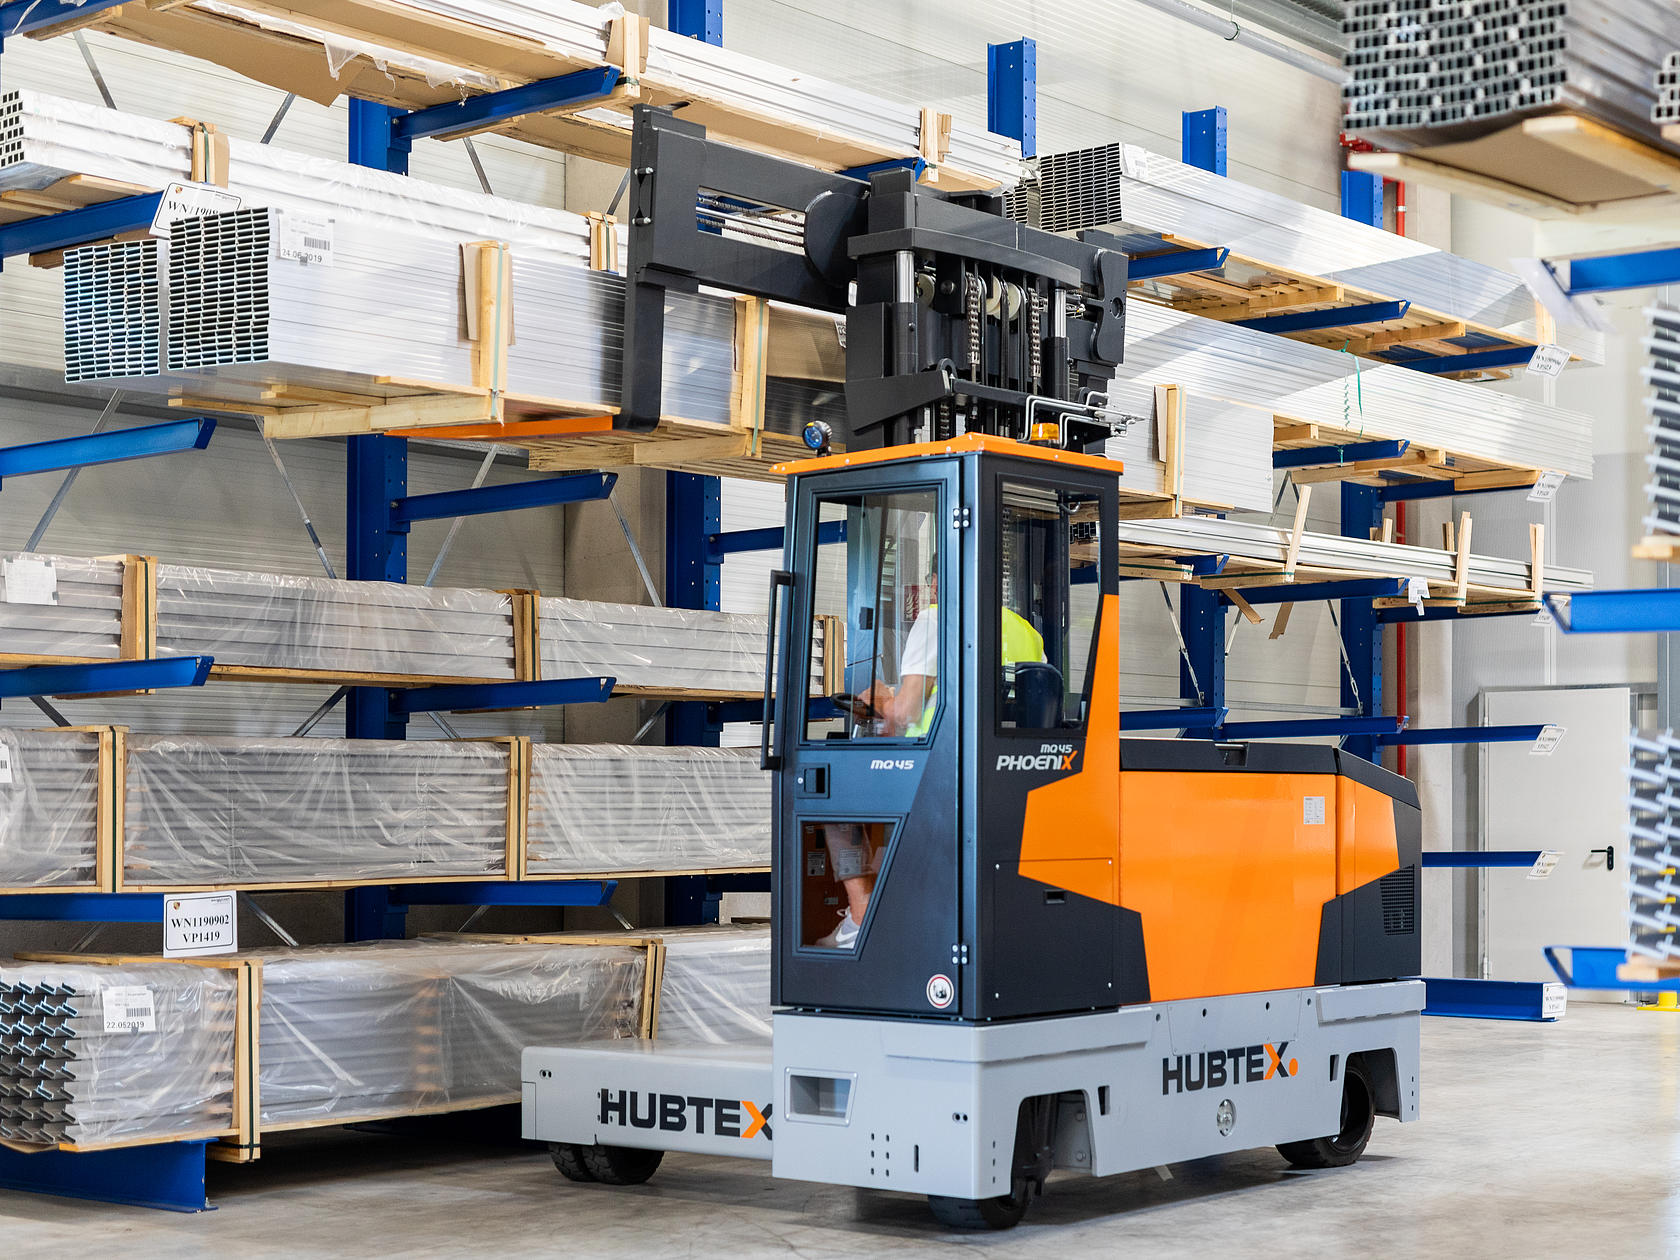 The new Phoenix series of electric multidirectional sideloaders in operation